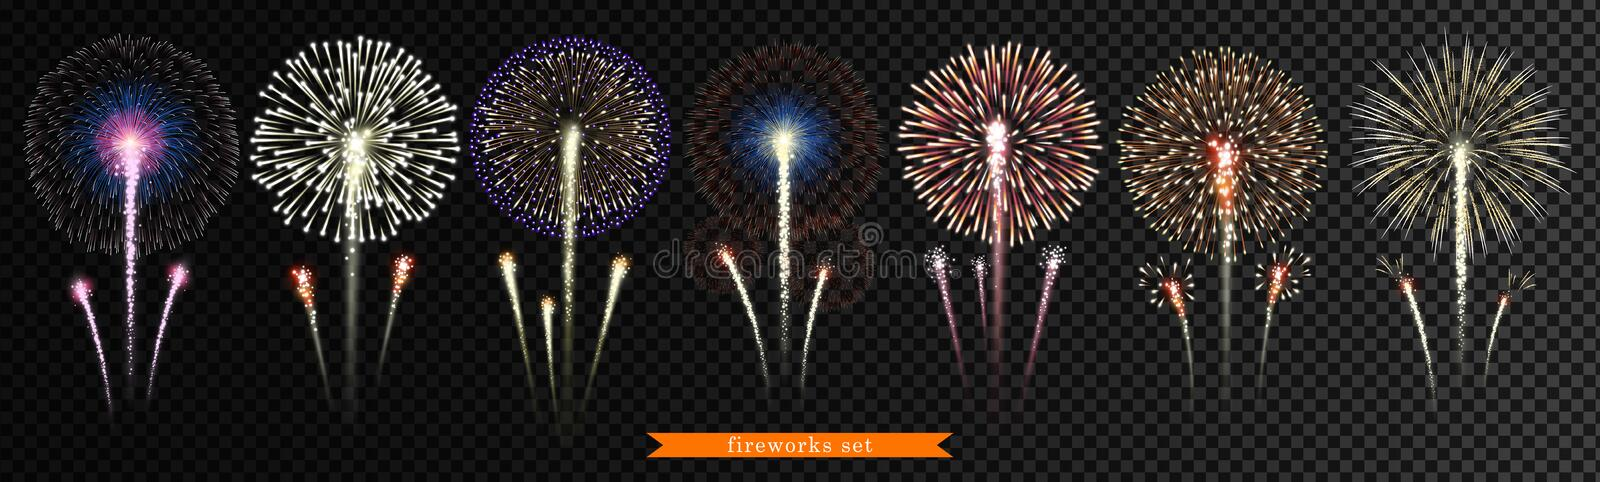 Set of bright, realistic fireworks on a transparent background. Vector stock illustration